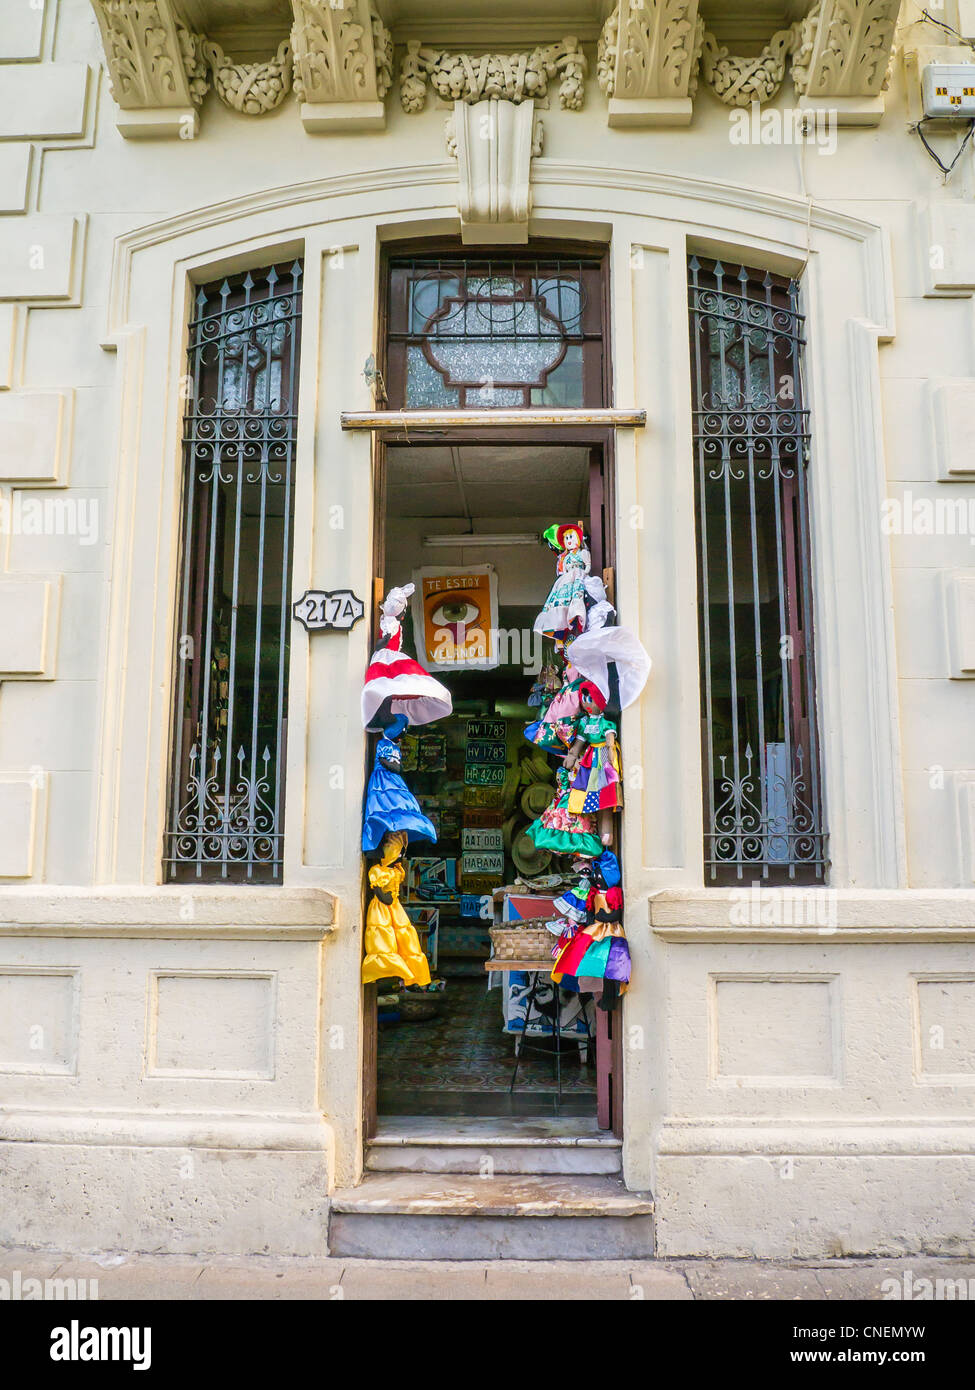 Children's clothing hangs on either side of the entrance door of a shop in Havana, Cuba. - Stock Image